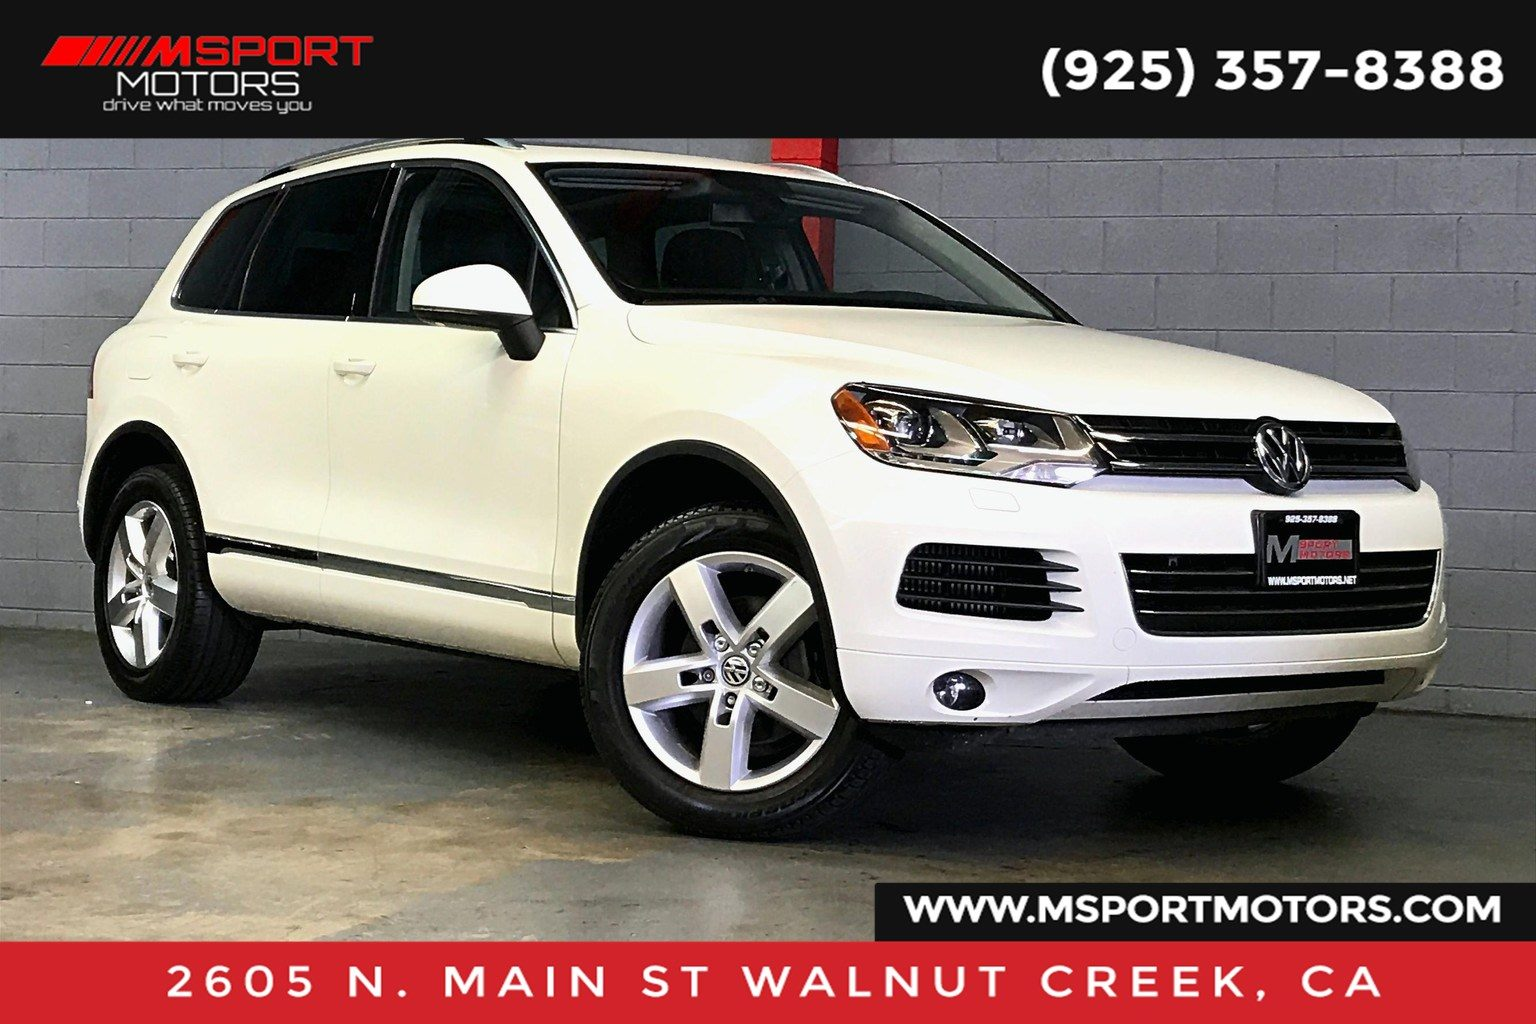 Sold 2011 Volkswagen Touareg V6 Tdi Lux In Walnut Creek